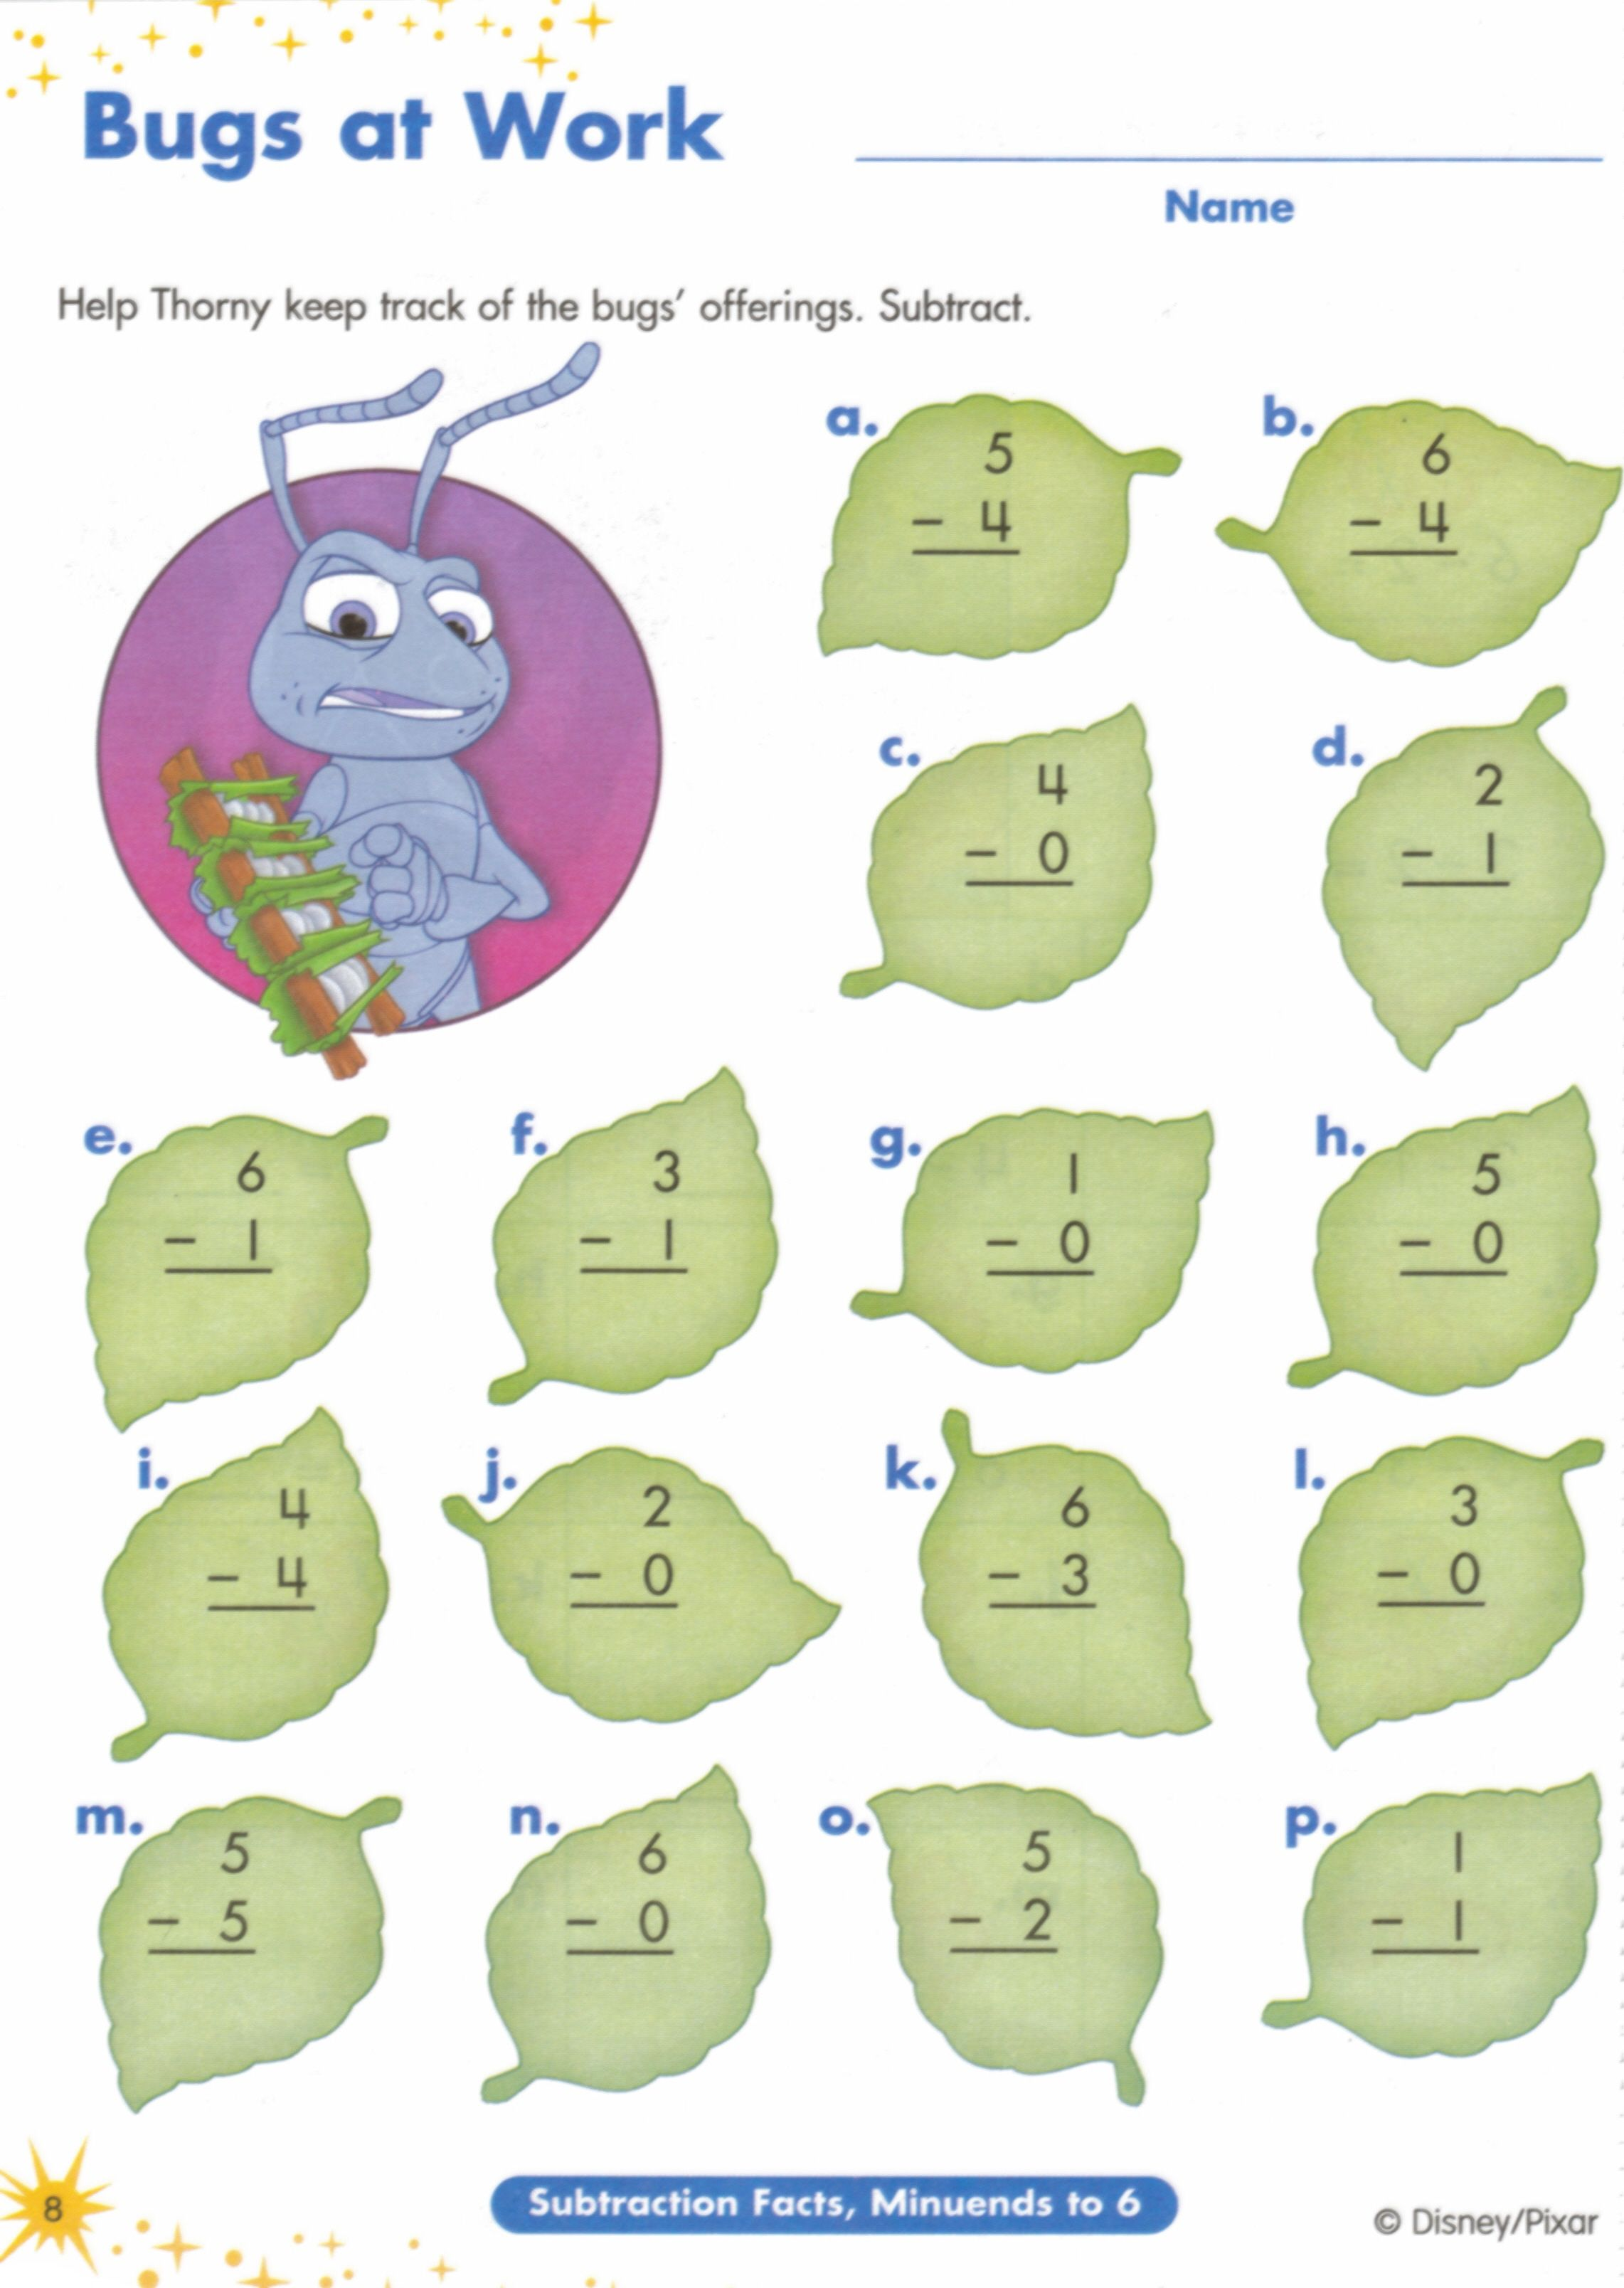 Proatmealus  Nice  Images About Worksheets On Pinterest  Fun Facts For Kids  With Fascinating  Images About Worksheets On Pinterest  Fun Facts For Kids Earth Day Worksheets And Jungles With Easy On The Eye Number Line Addition And Subtraction Worksheets Also Math Worksheets For All Grades In Addition Division Worksheet For Grade  And Worksheets For Early Years As Well As Year  History Worksheets Additionally Senior Kindergarten Worksheets From Pinterestcom With Proatmealus  Fascinating  Images About Worksheets On Pinterest  Fun Facts For Kids  With Easy On The Eye  Images About Worksheets On Pinterest  Fun Facts For Kids Earth Day Worksheets And Jungles And Nice Number Line Addition And Subtraction Worksheets Also Math Worksheets For All Grades In Addition Division Worksheet For Grade  From Pinterestcom